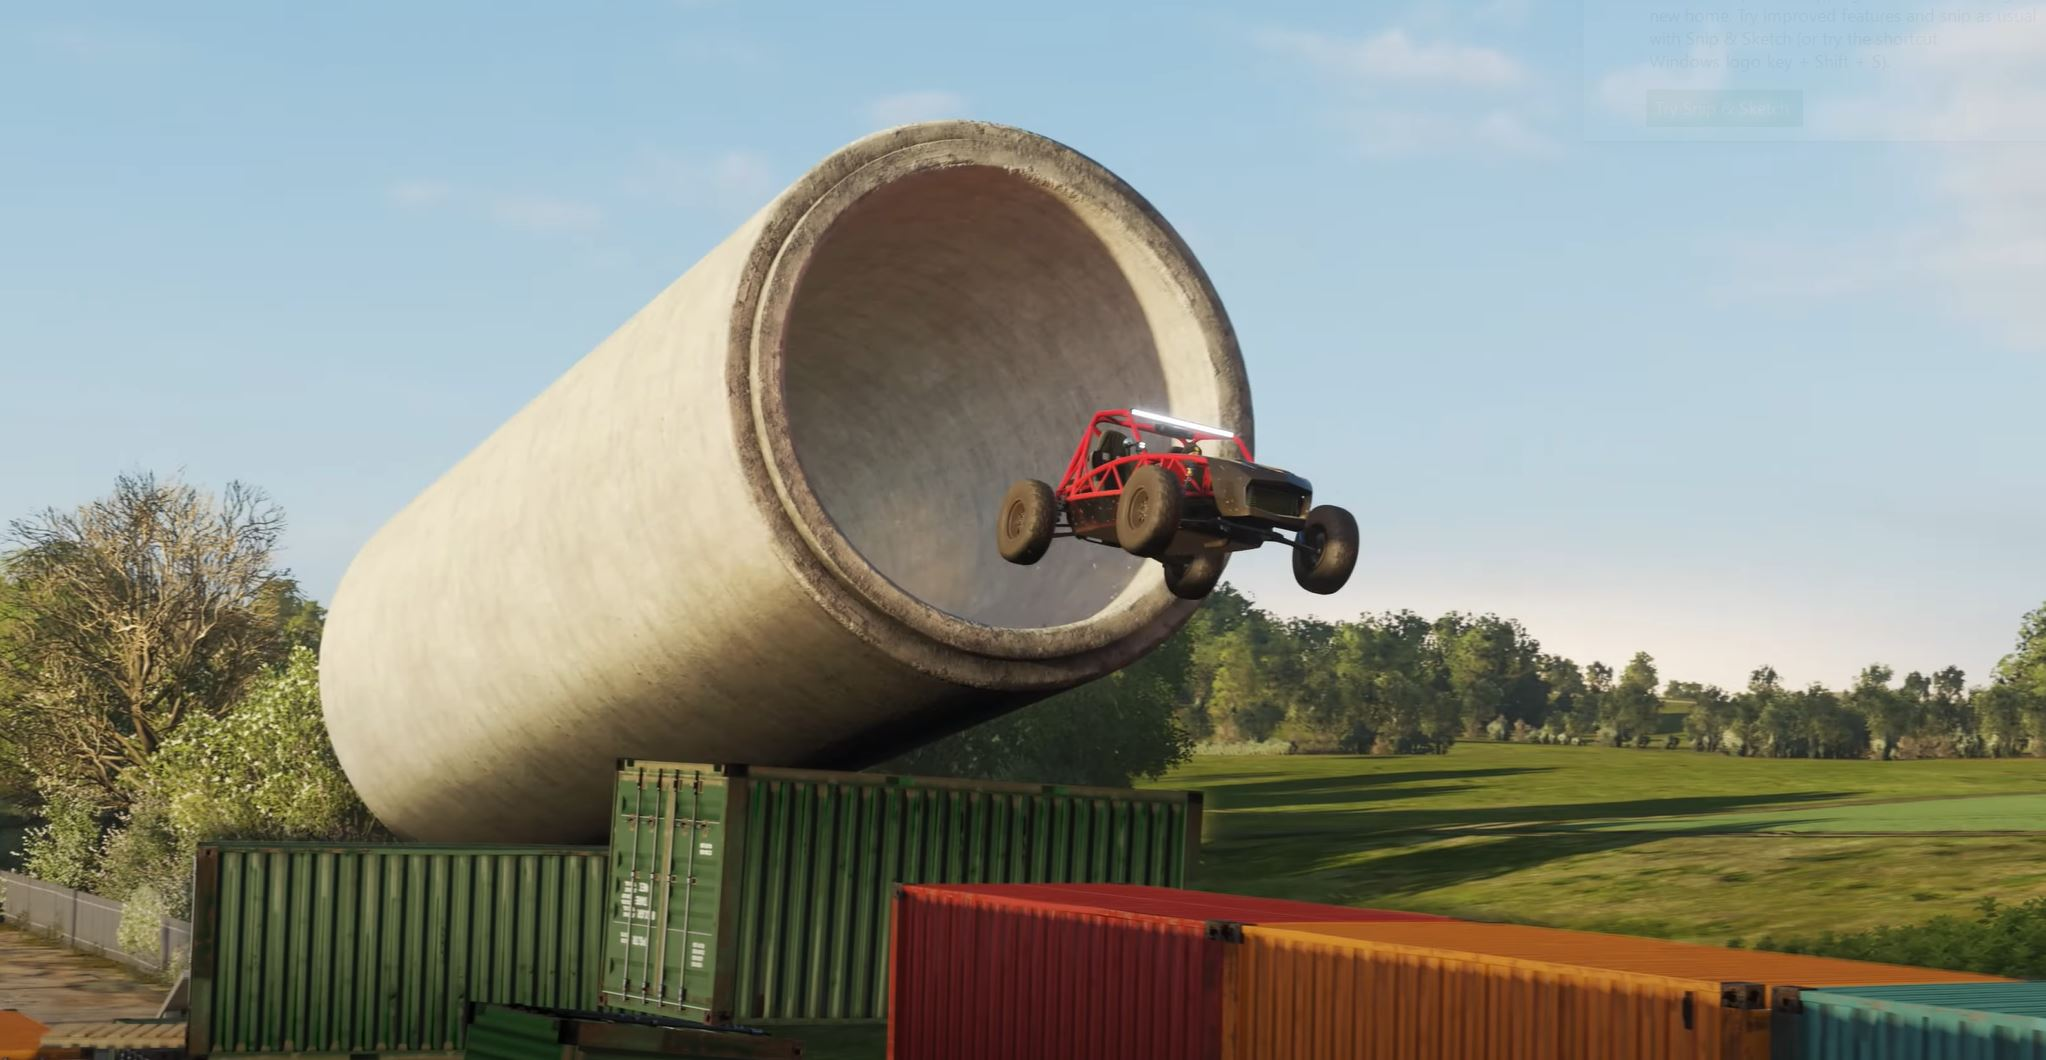 Forza Horizon 4 is getting a free stunt racing update this week